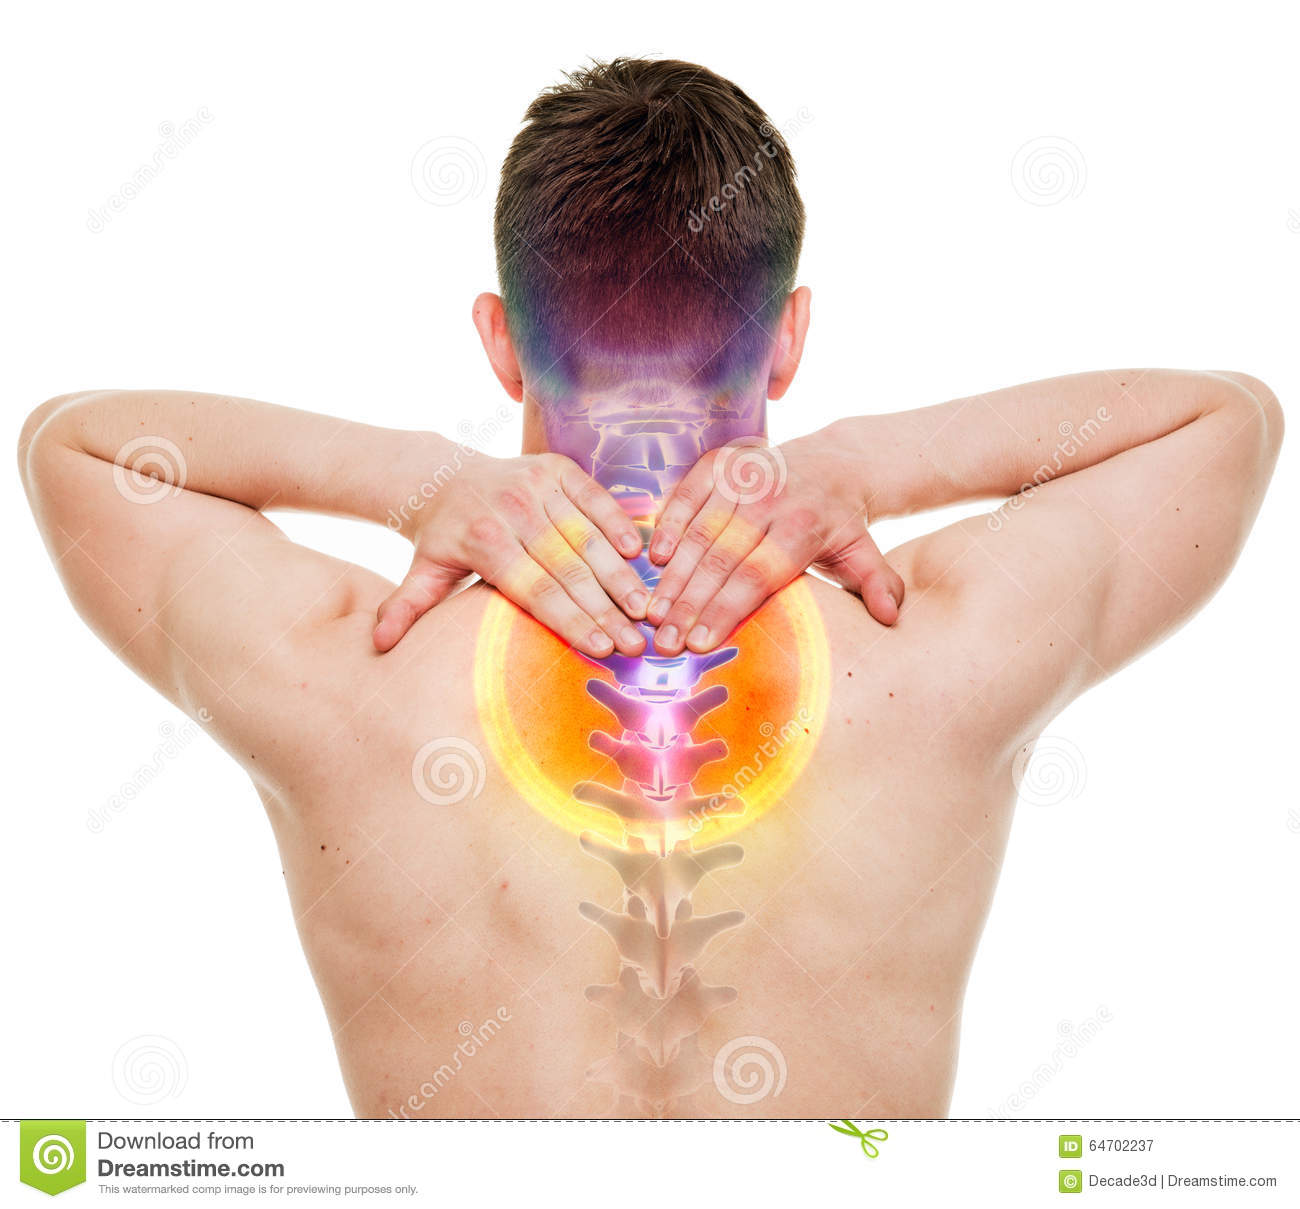 NECK Pain - Male Hurt Cervical Spine Isolated On White - REAL An ...